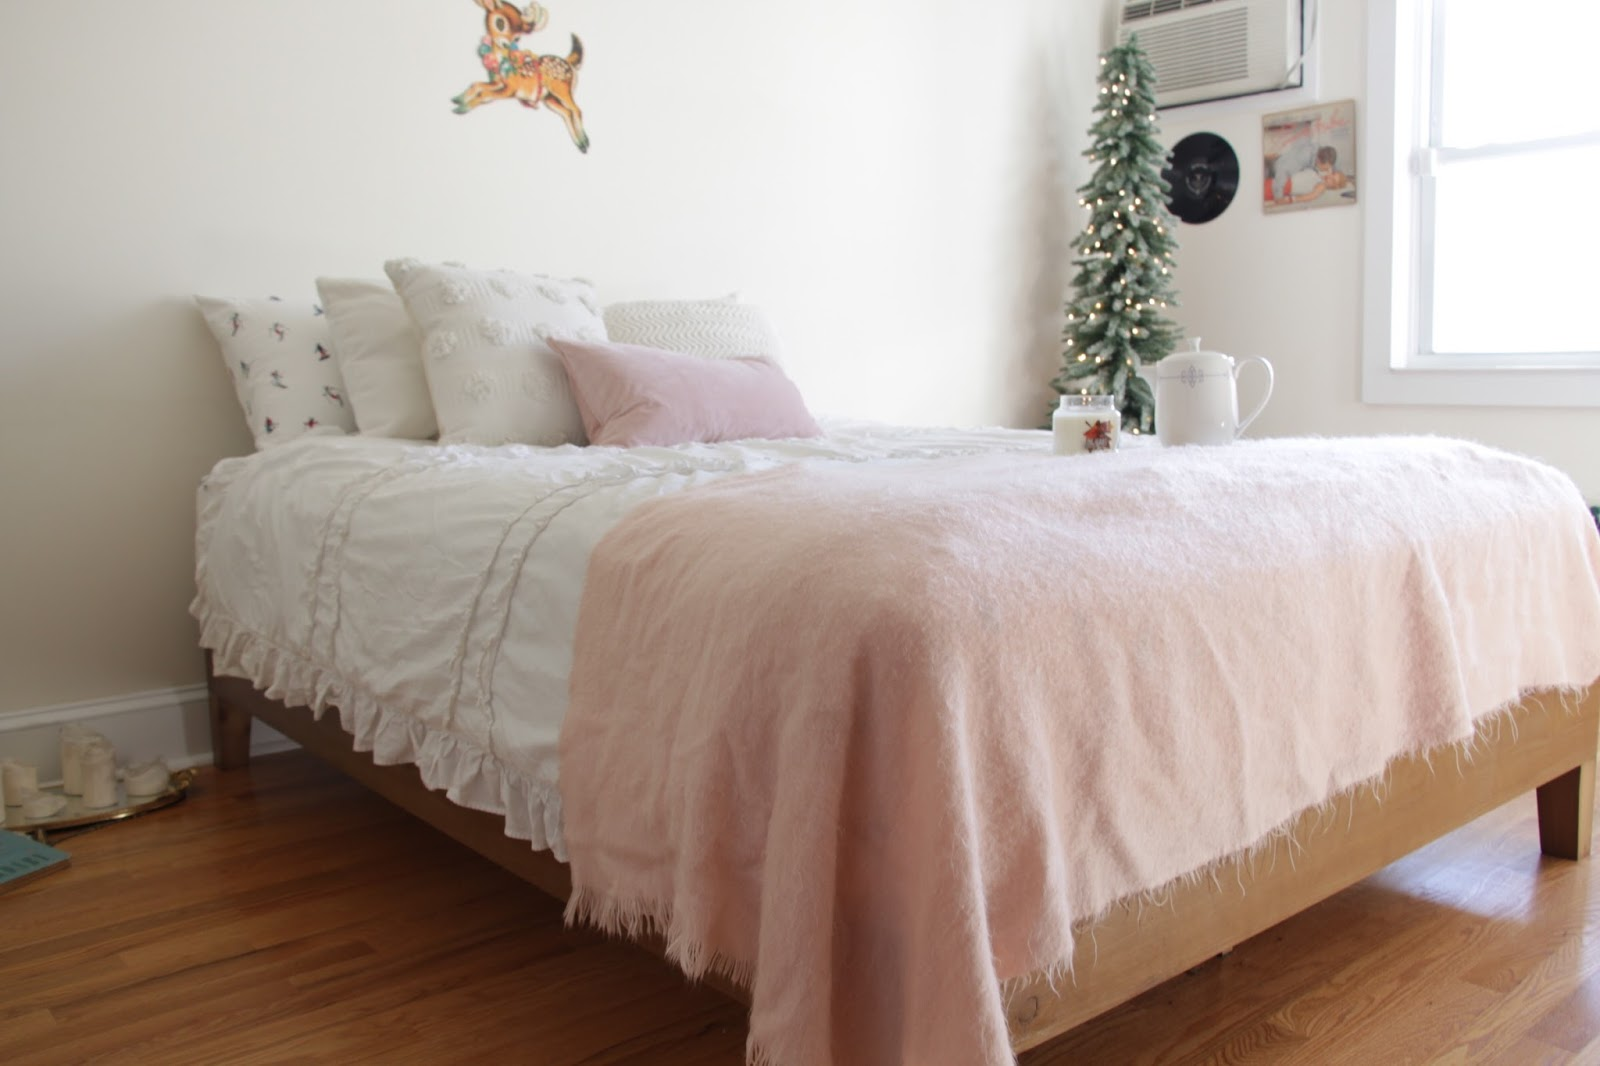 The first piece of furniture I bought for my new room was my bed  I wanted  something simple and inexpensive  I fell in love with a bed frame from  Urban. My Bedroom Tour   Emelyne